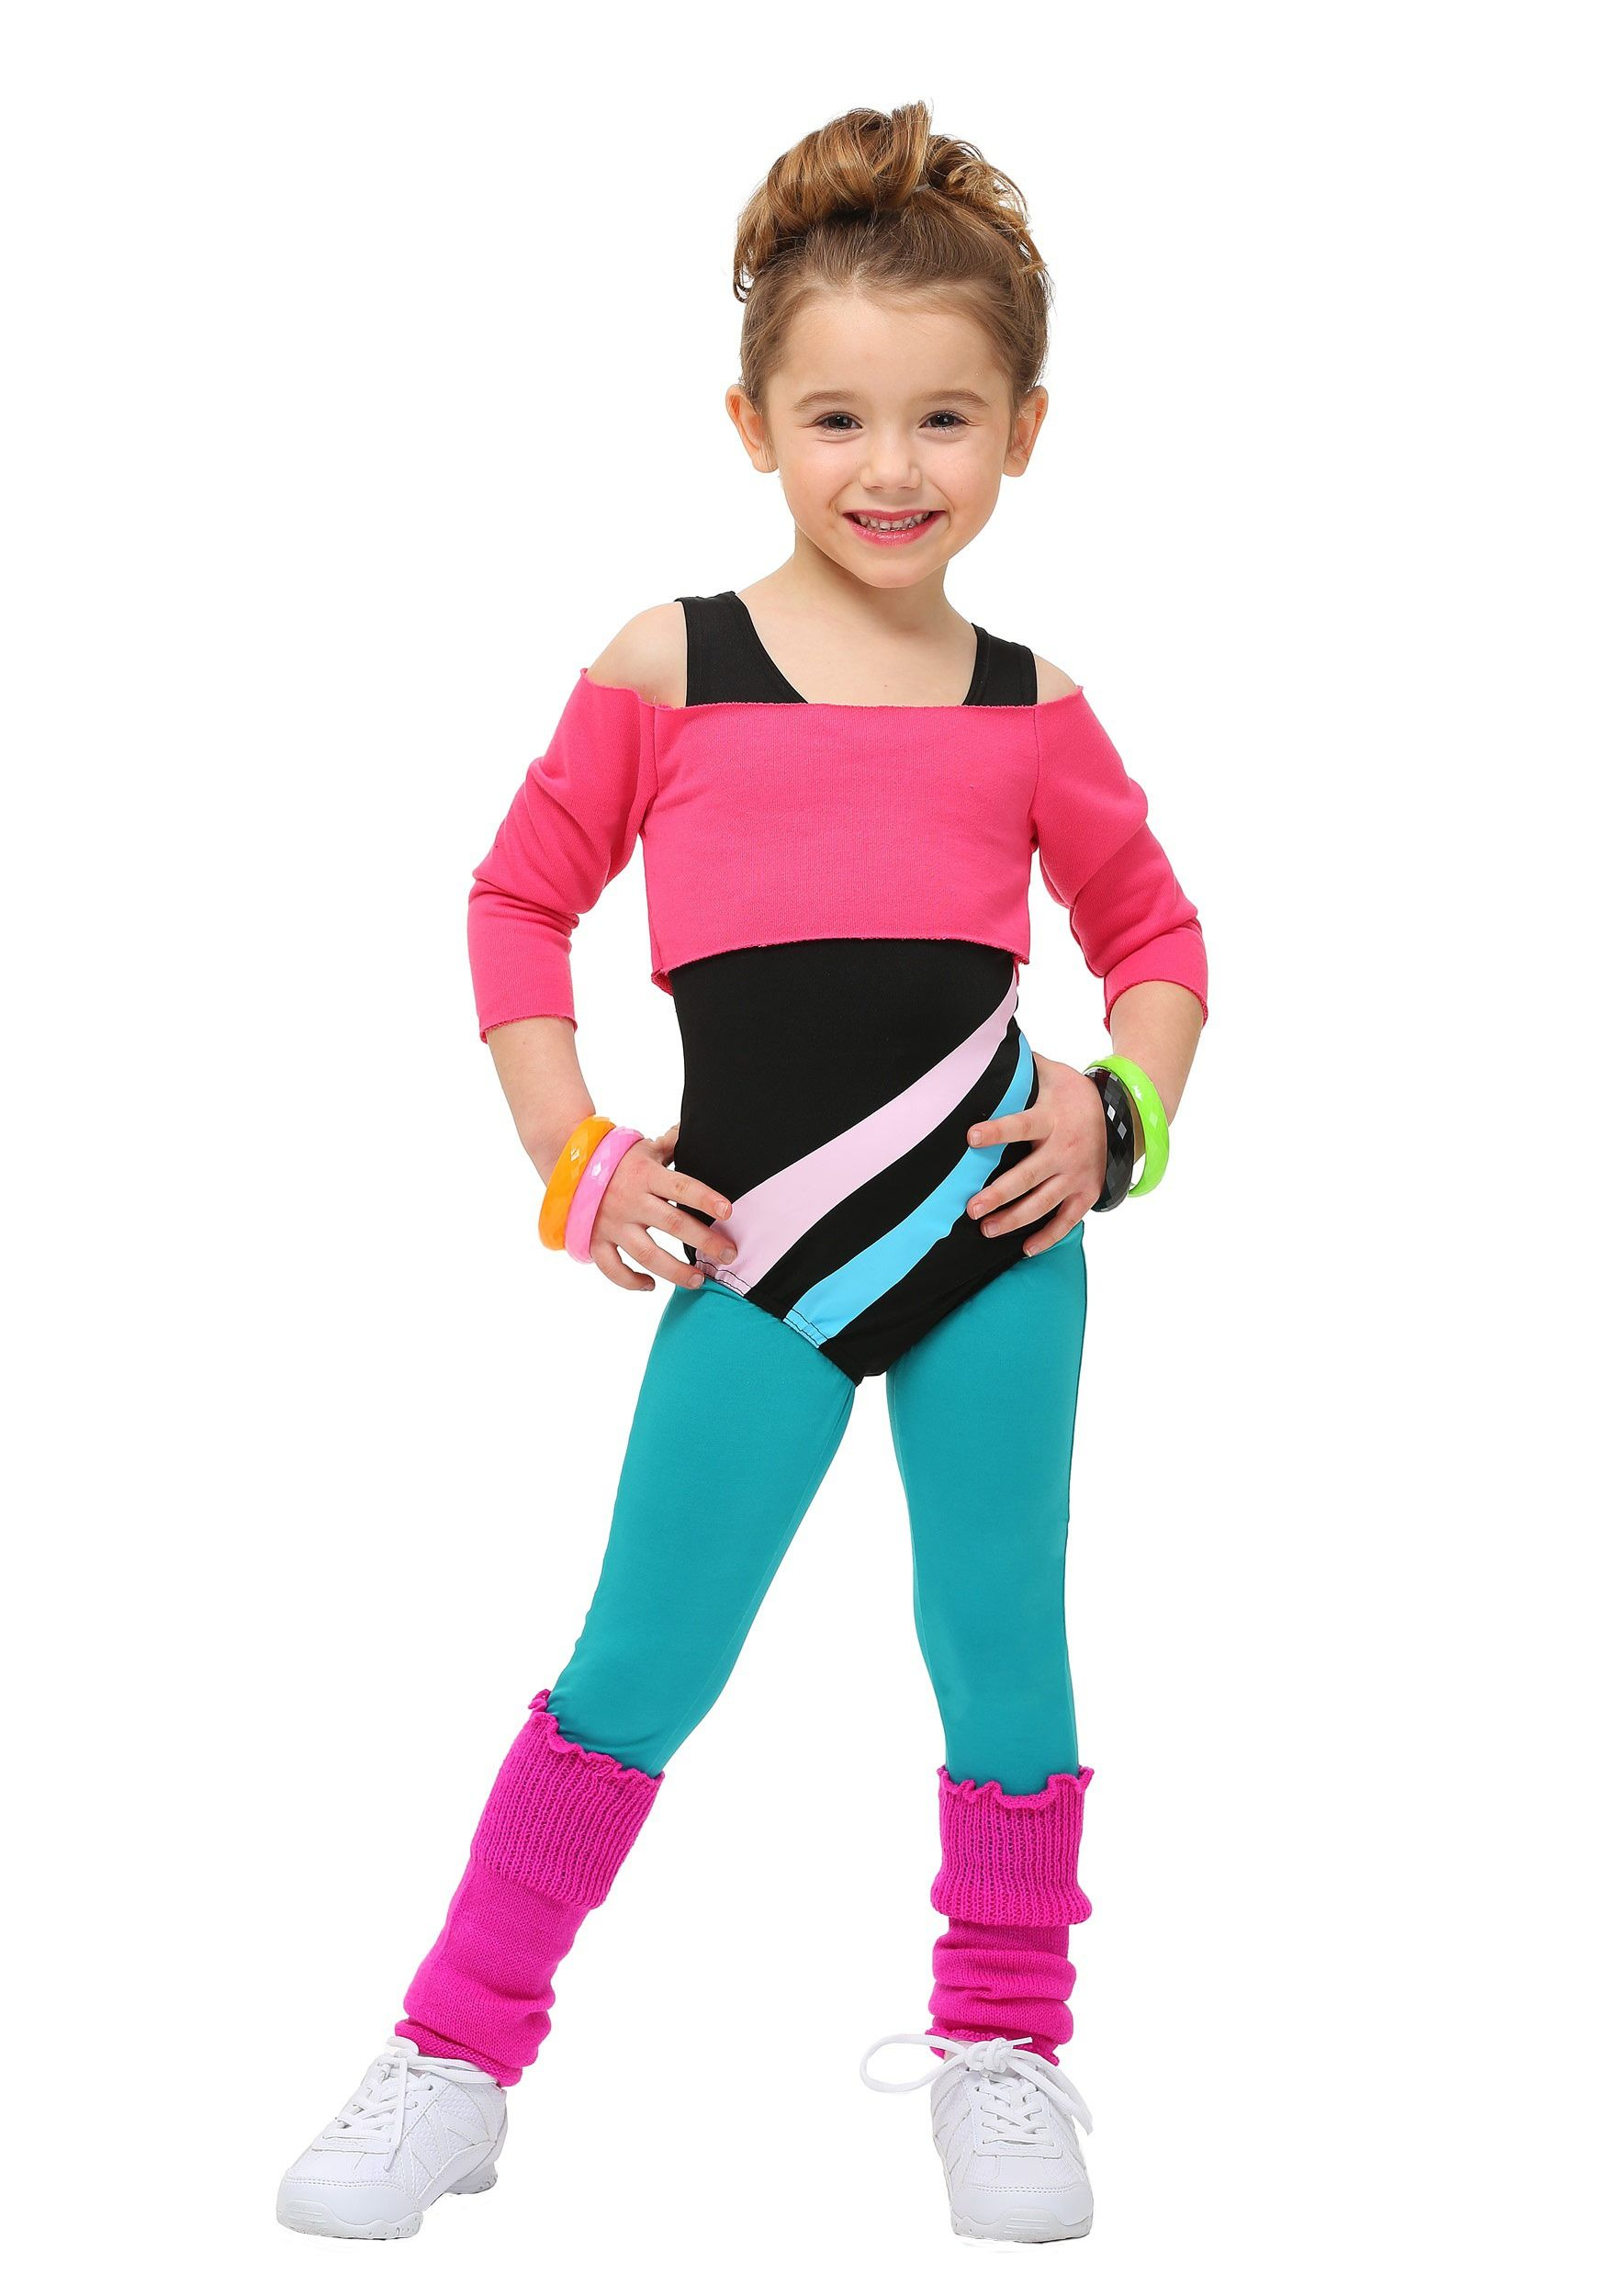 80S Workout Girl Costume  80S Kids Costumes-9053